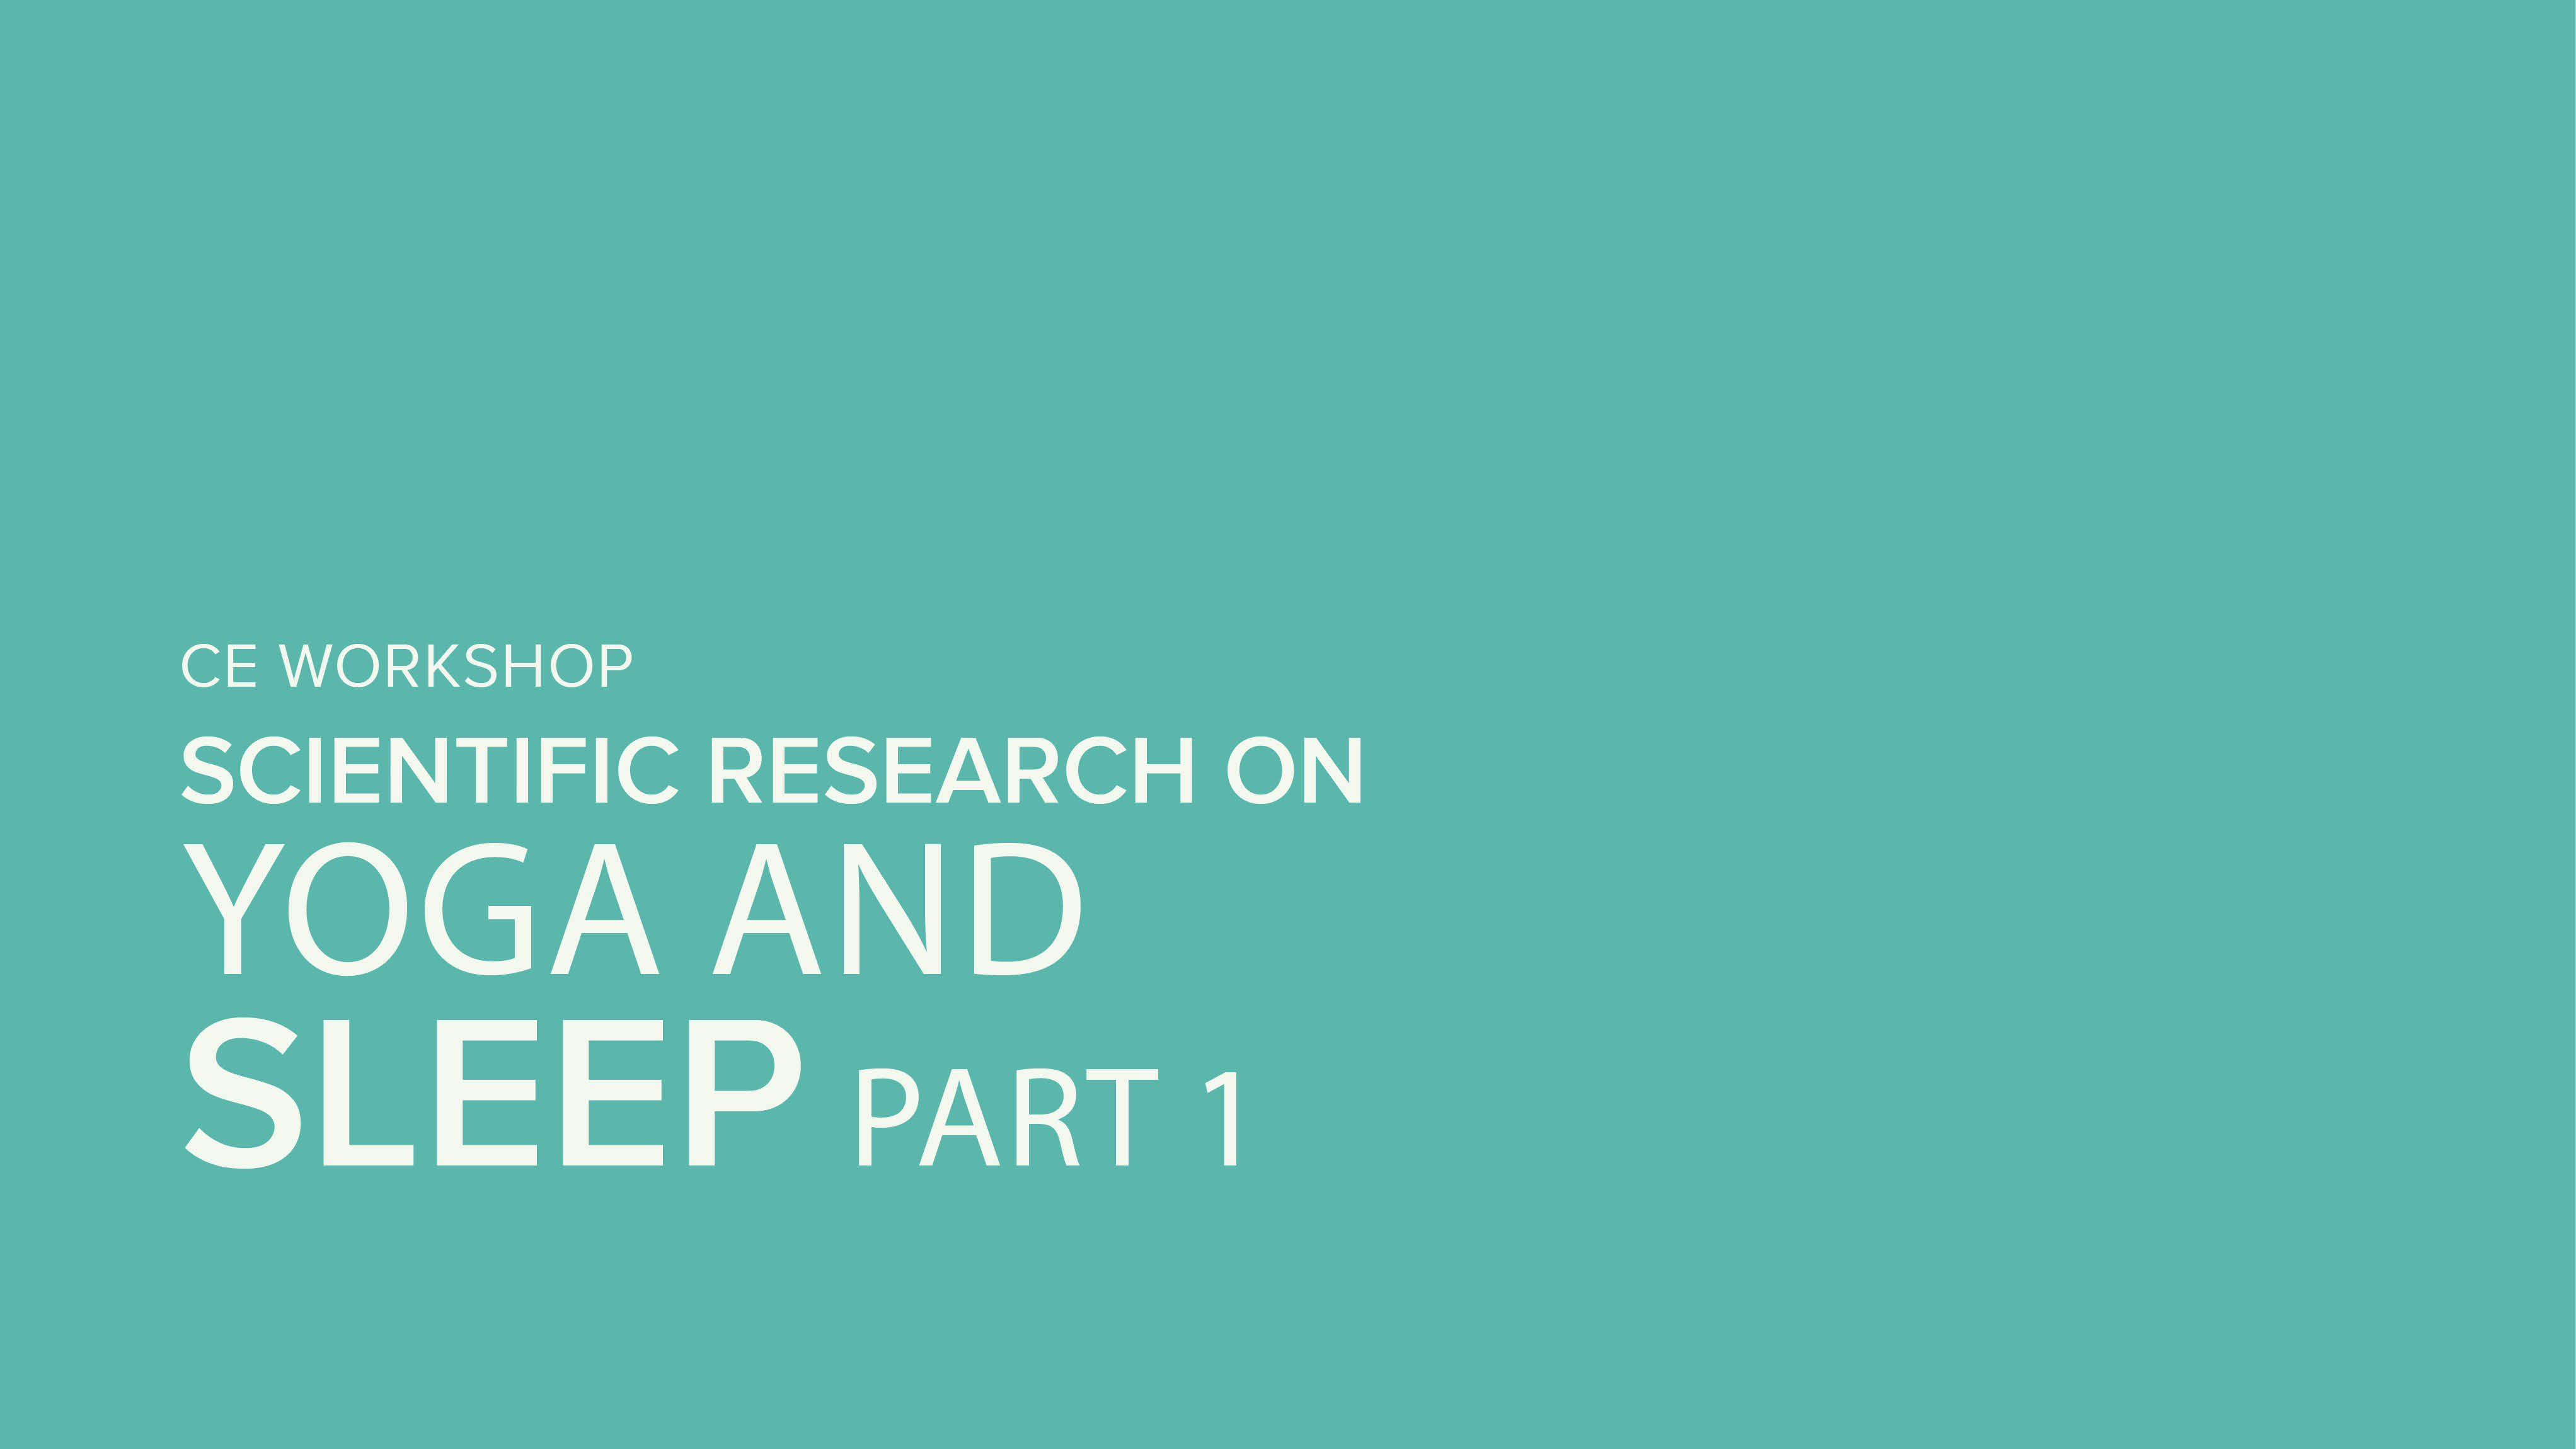 CE Workshop | Scientific Research on Yoga and Sleep, Part 1